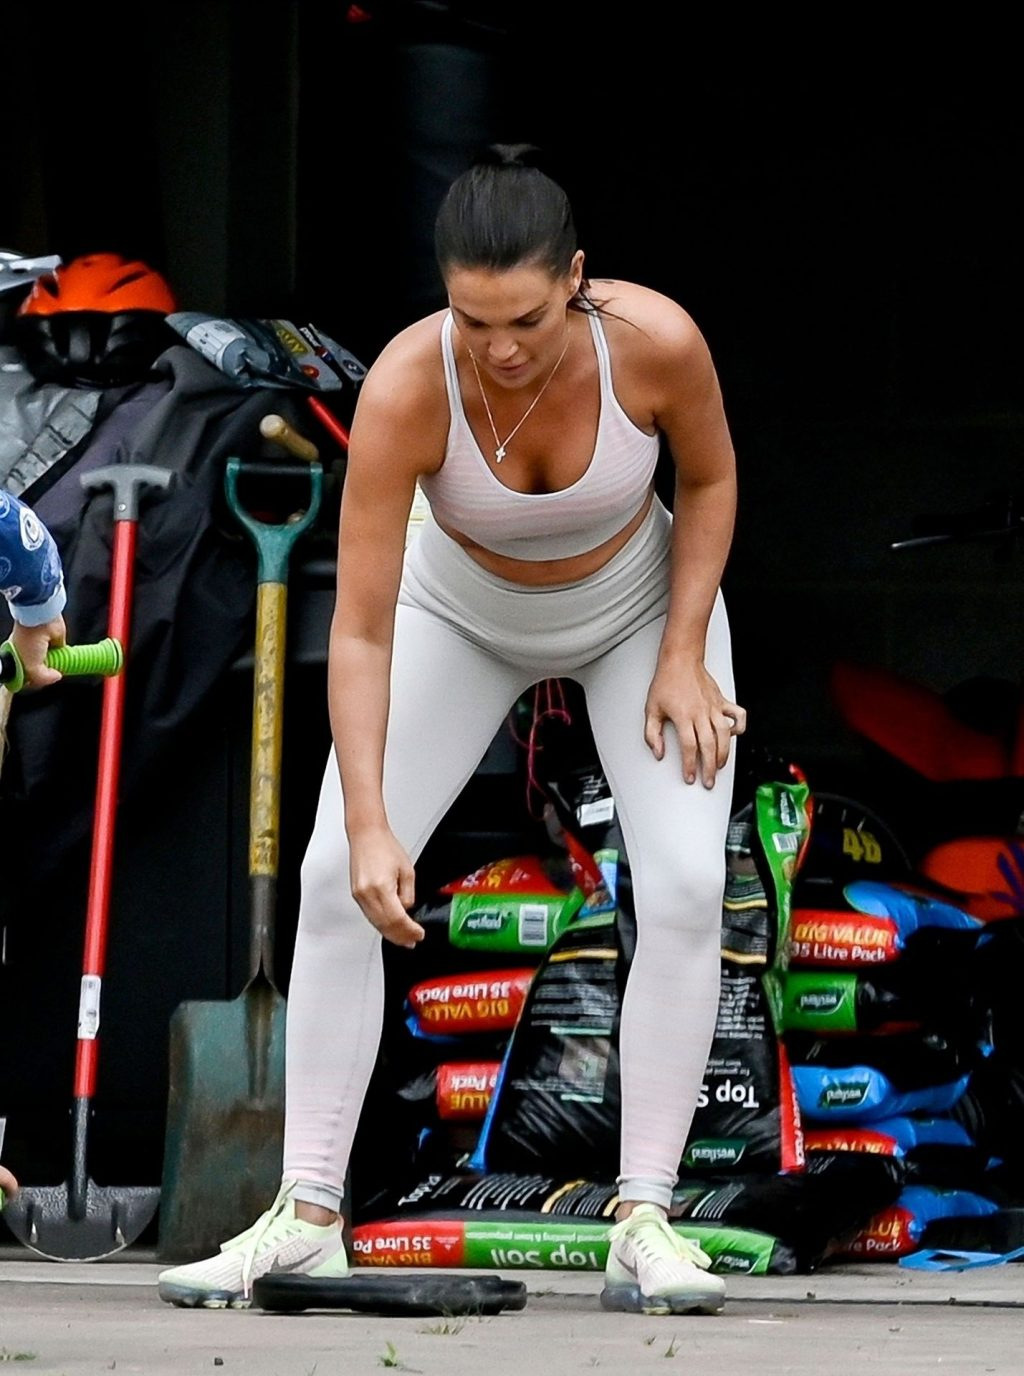 Sexy Danielle Lloyd Is Pictured While Training with Michael O'Neill (46 Photos)